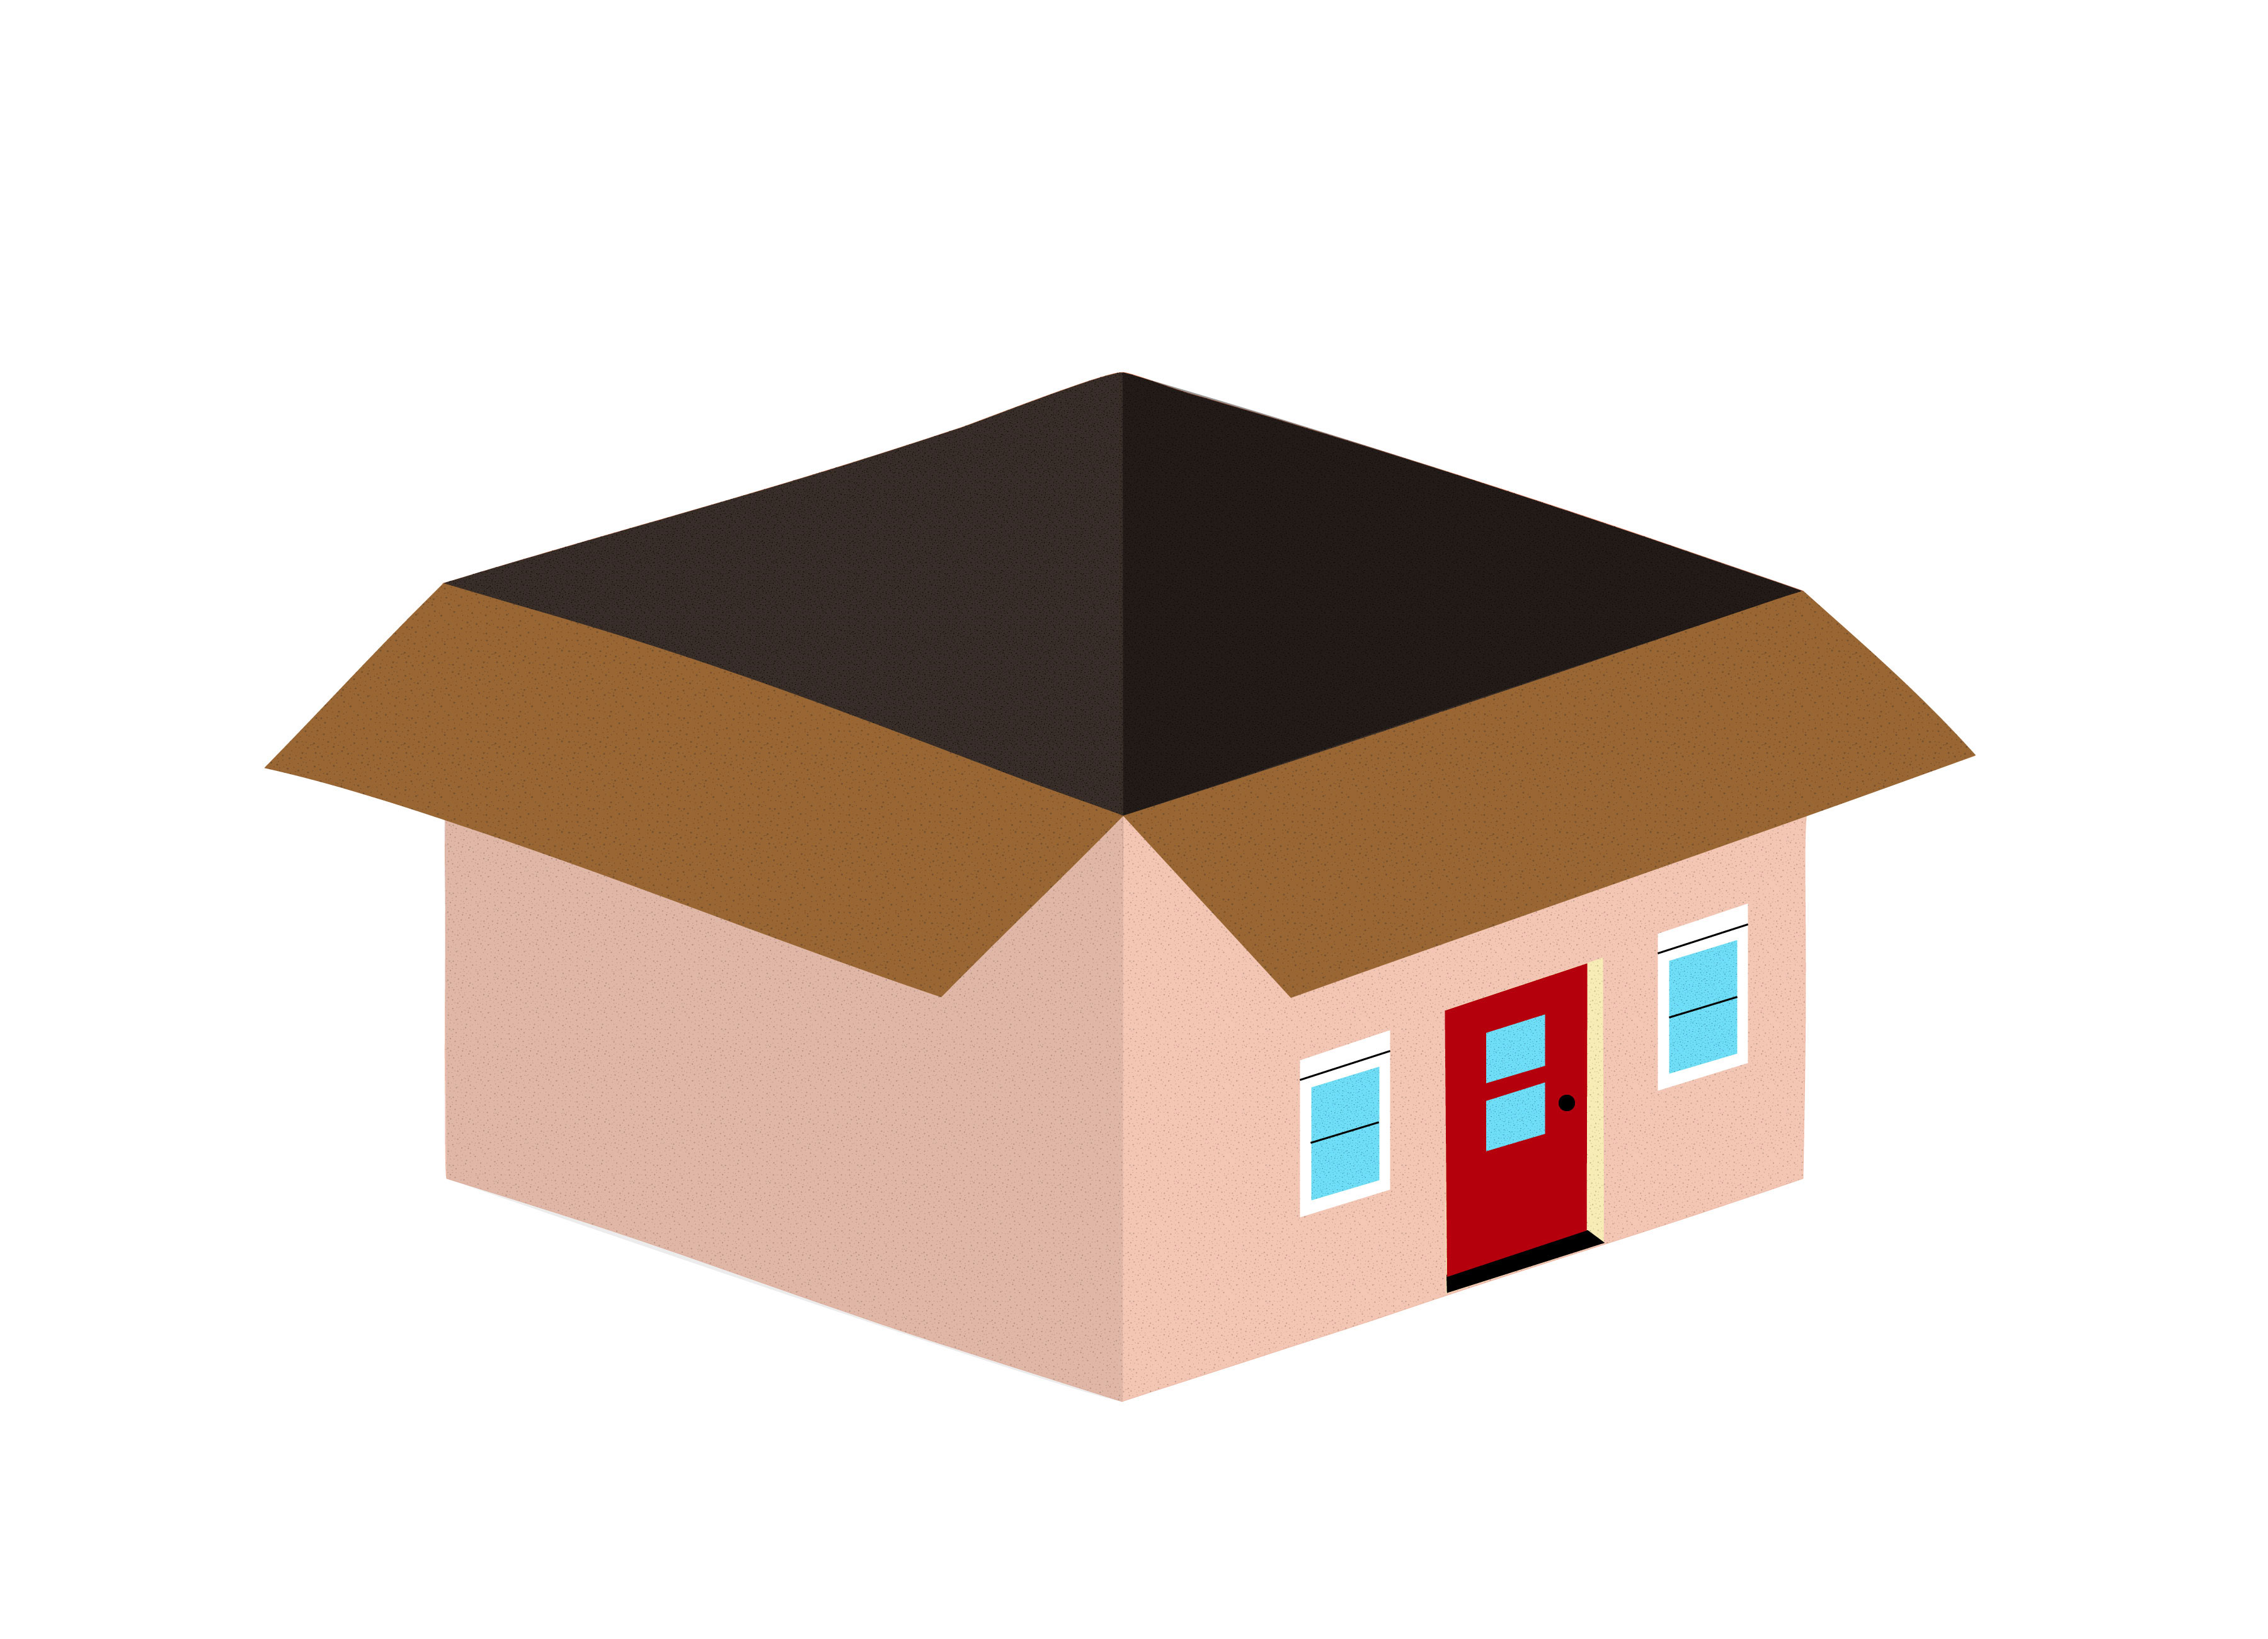 Illustration of a moving box, with a front door and windows on one side